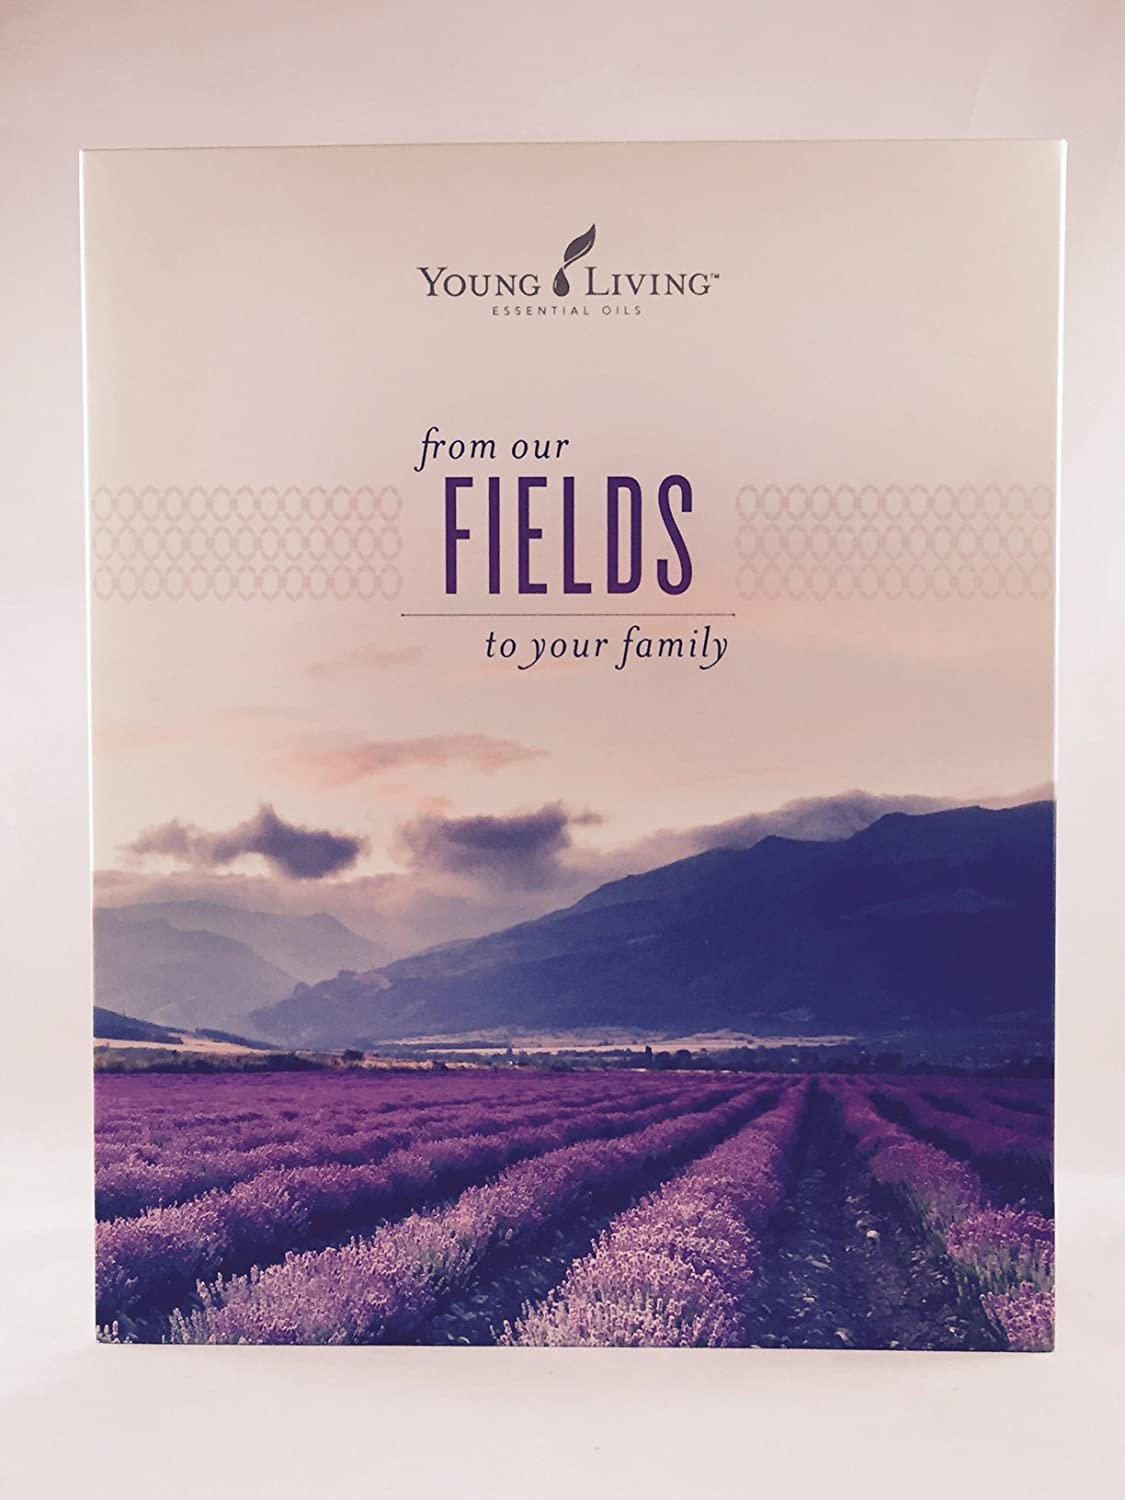 Amazon.com : Young Living Essential Oils - From Seed to Seal - Package - Aromatherapy - Relaxation : Beauty